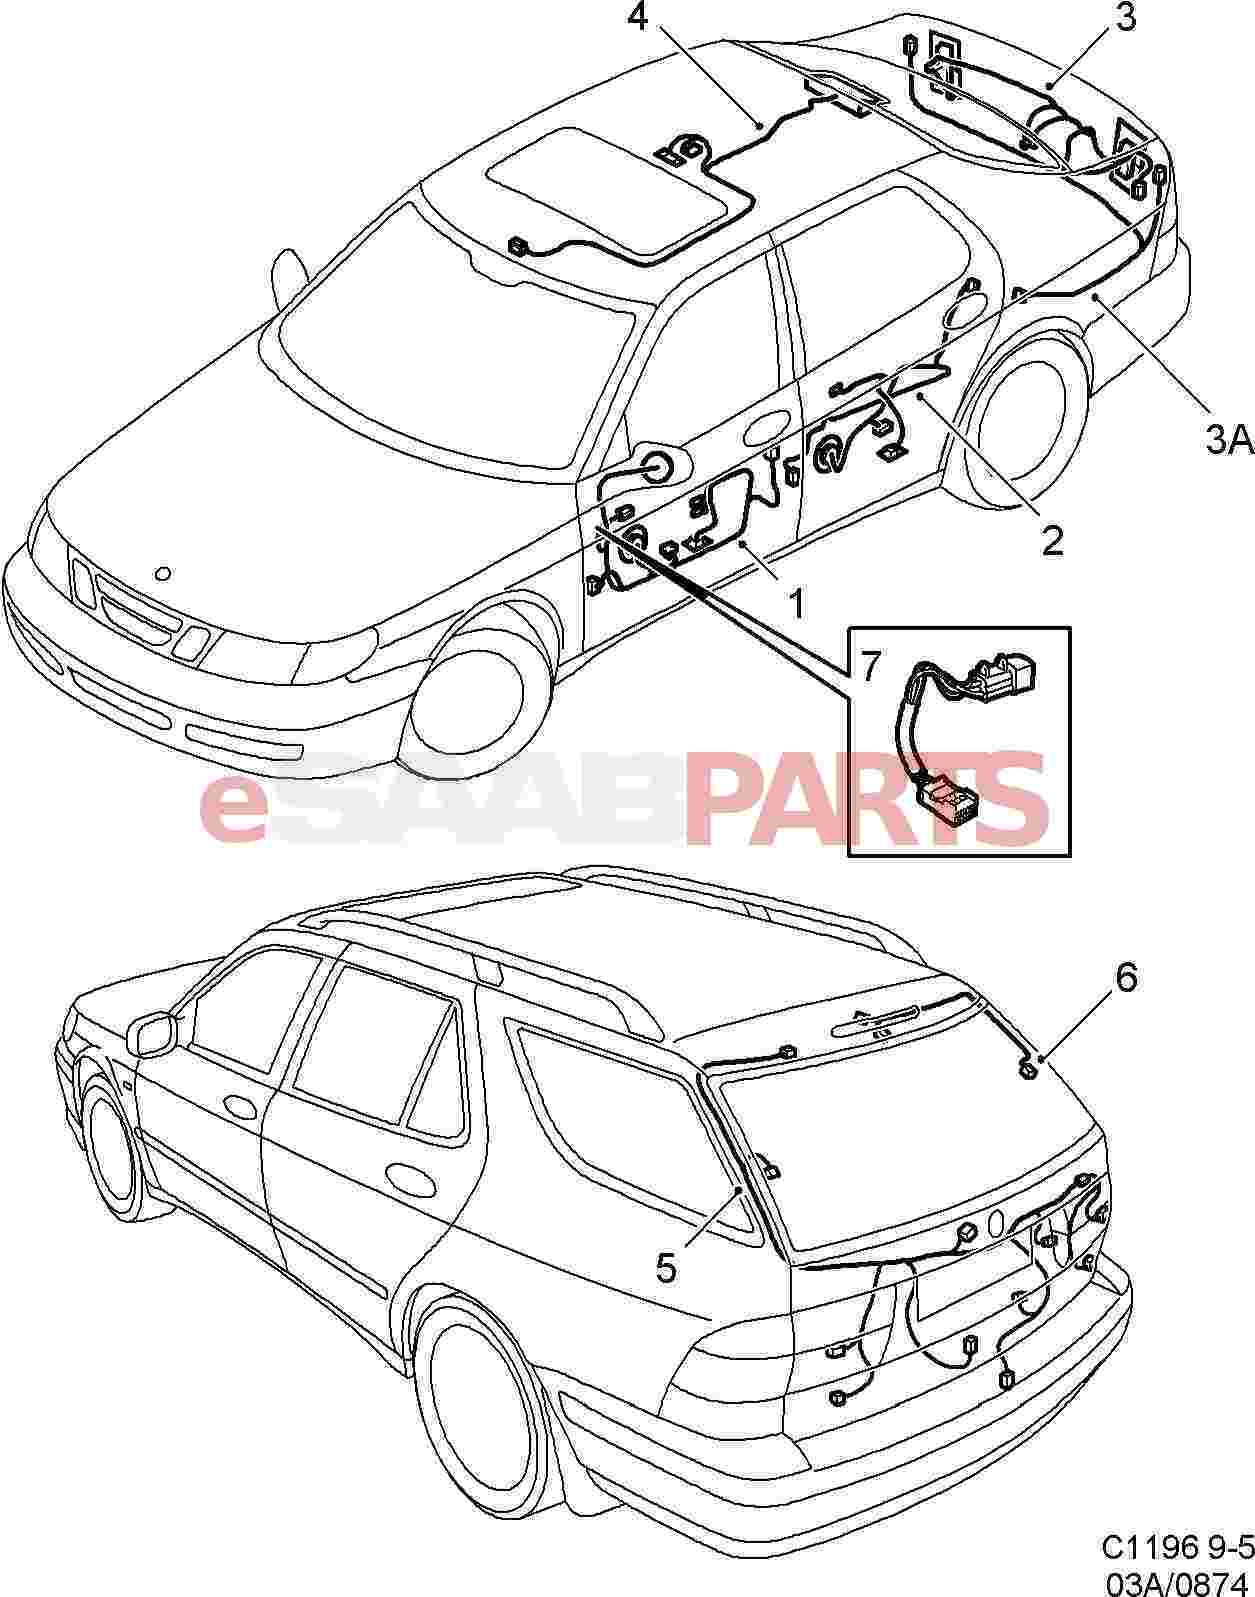 Saab 9 5 9600 Electrical Parts Wiring Harness Diagram Doors Roof And Rear Hatch